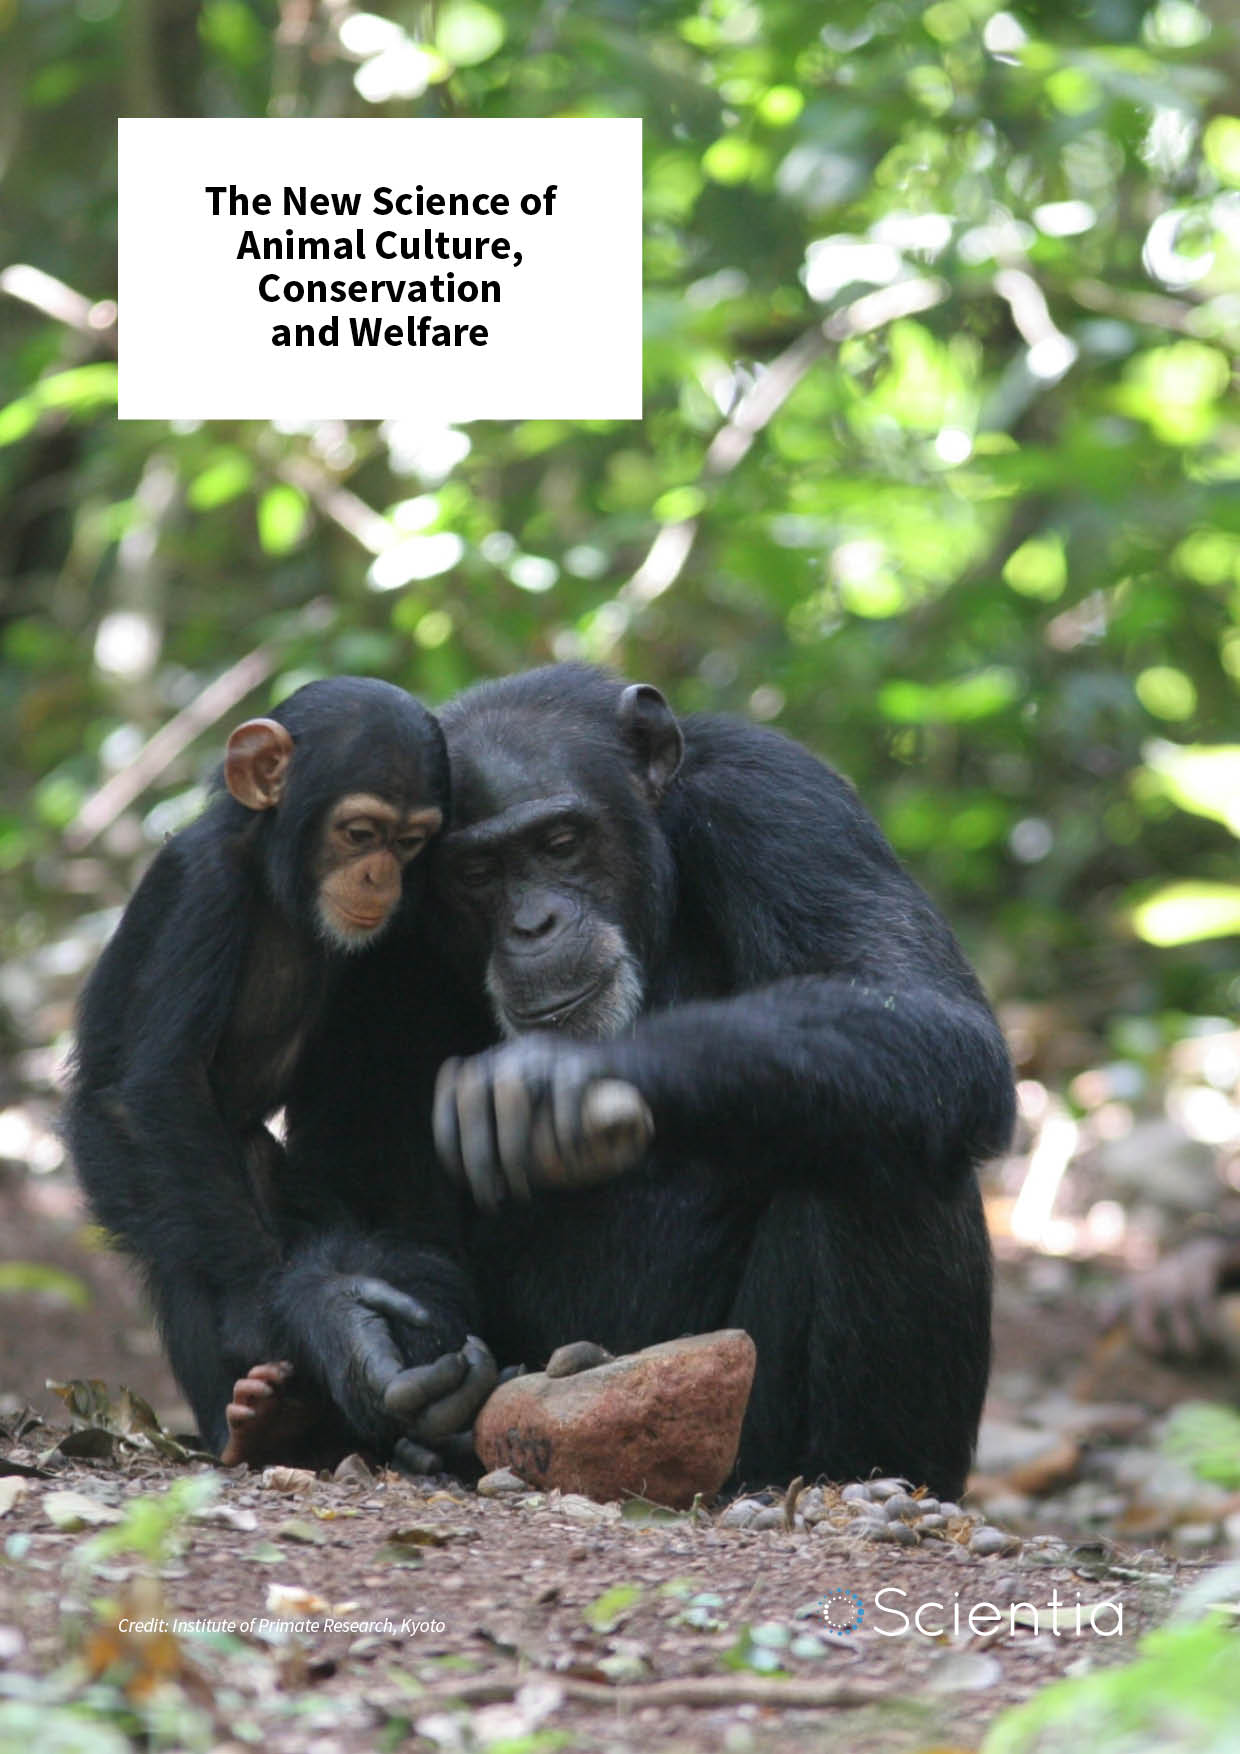 Professor Andrew Whiten – The New Science of Animal Culture, Conservation and Welfare